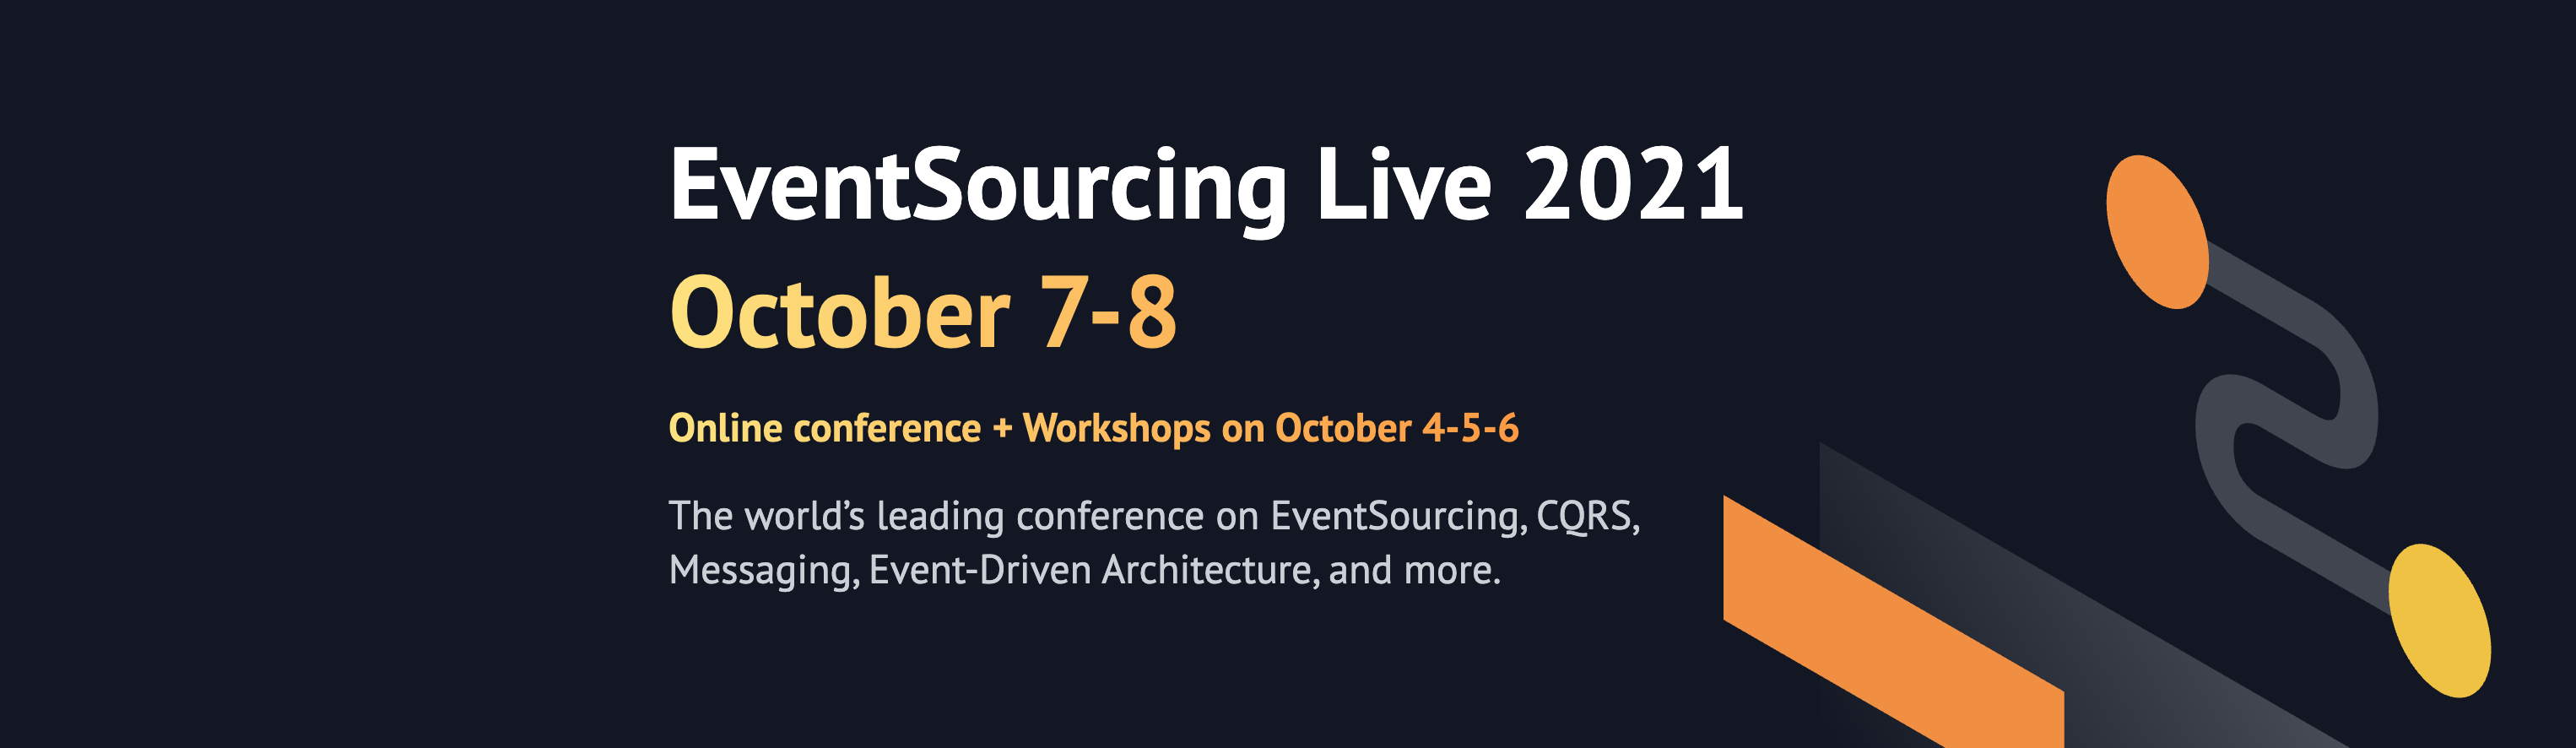 EventSourcing Live 2021